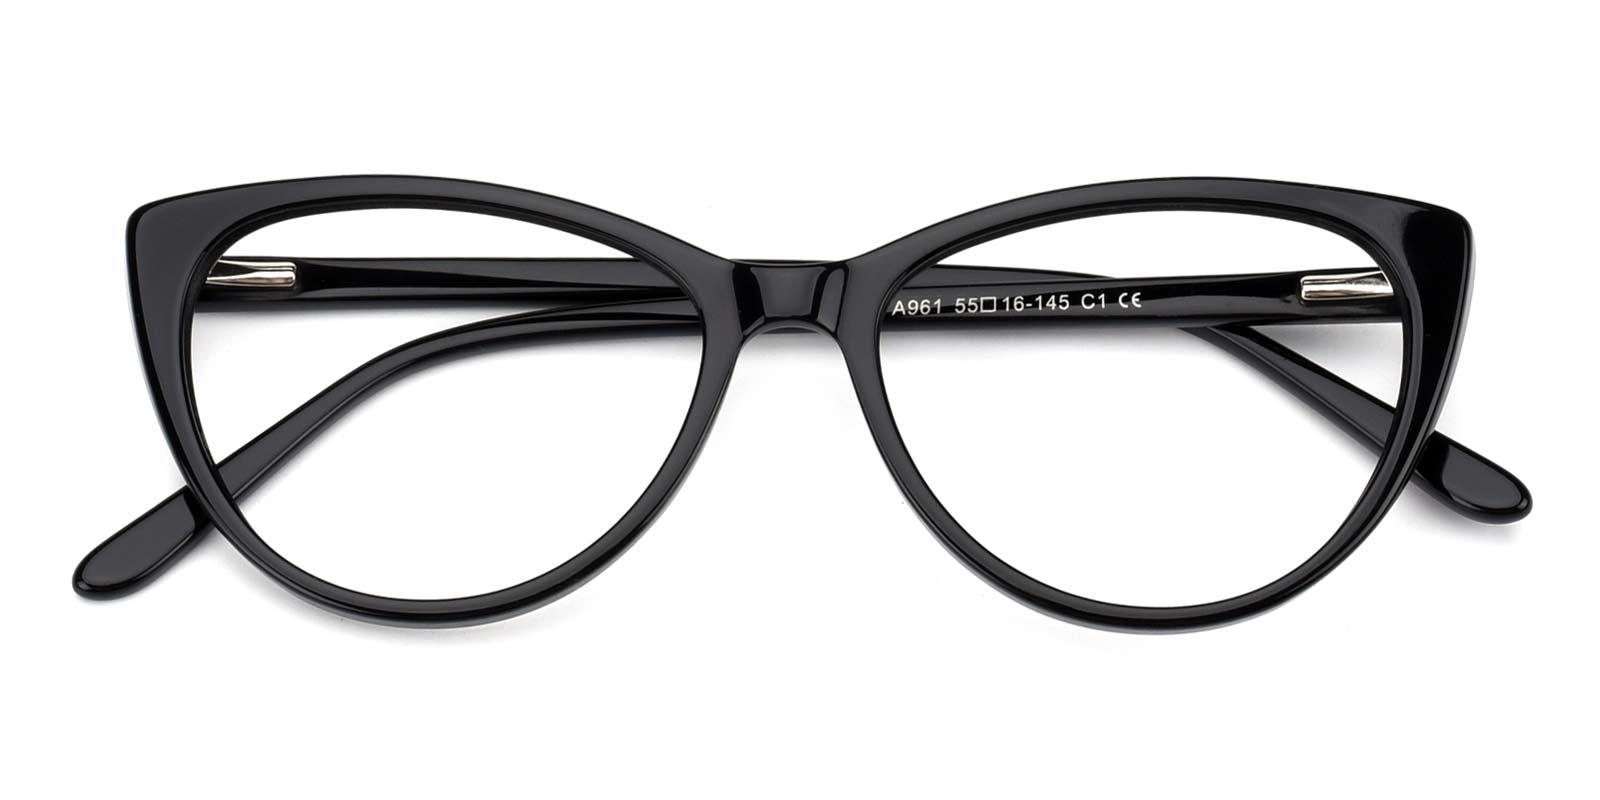 Law-Black-Cat-Acetate-Eyeglasses-detail